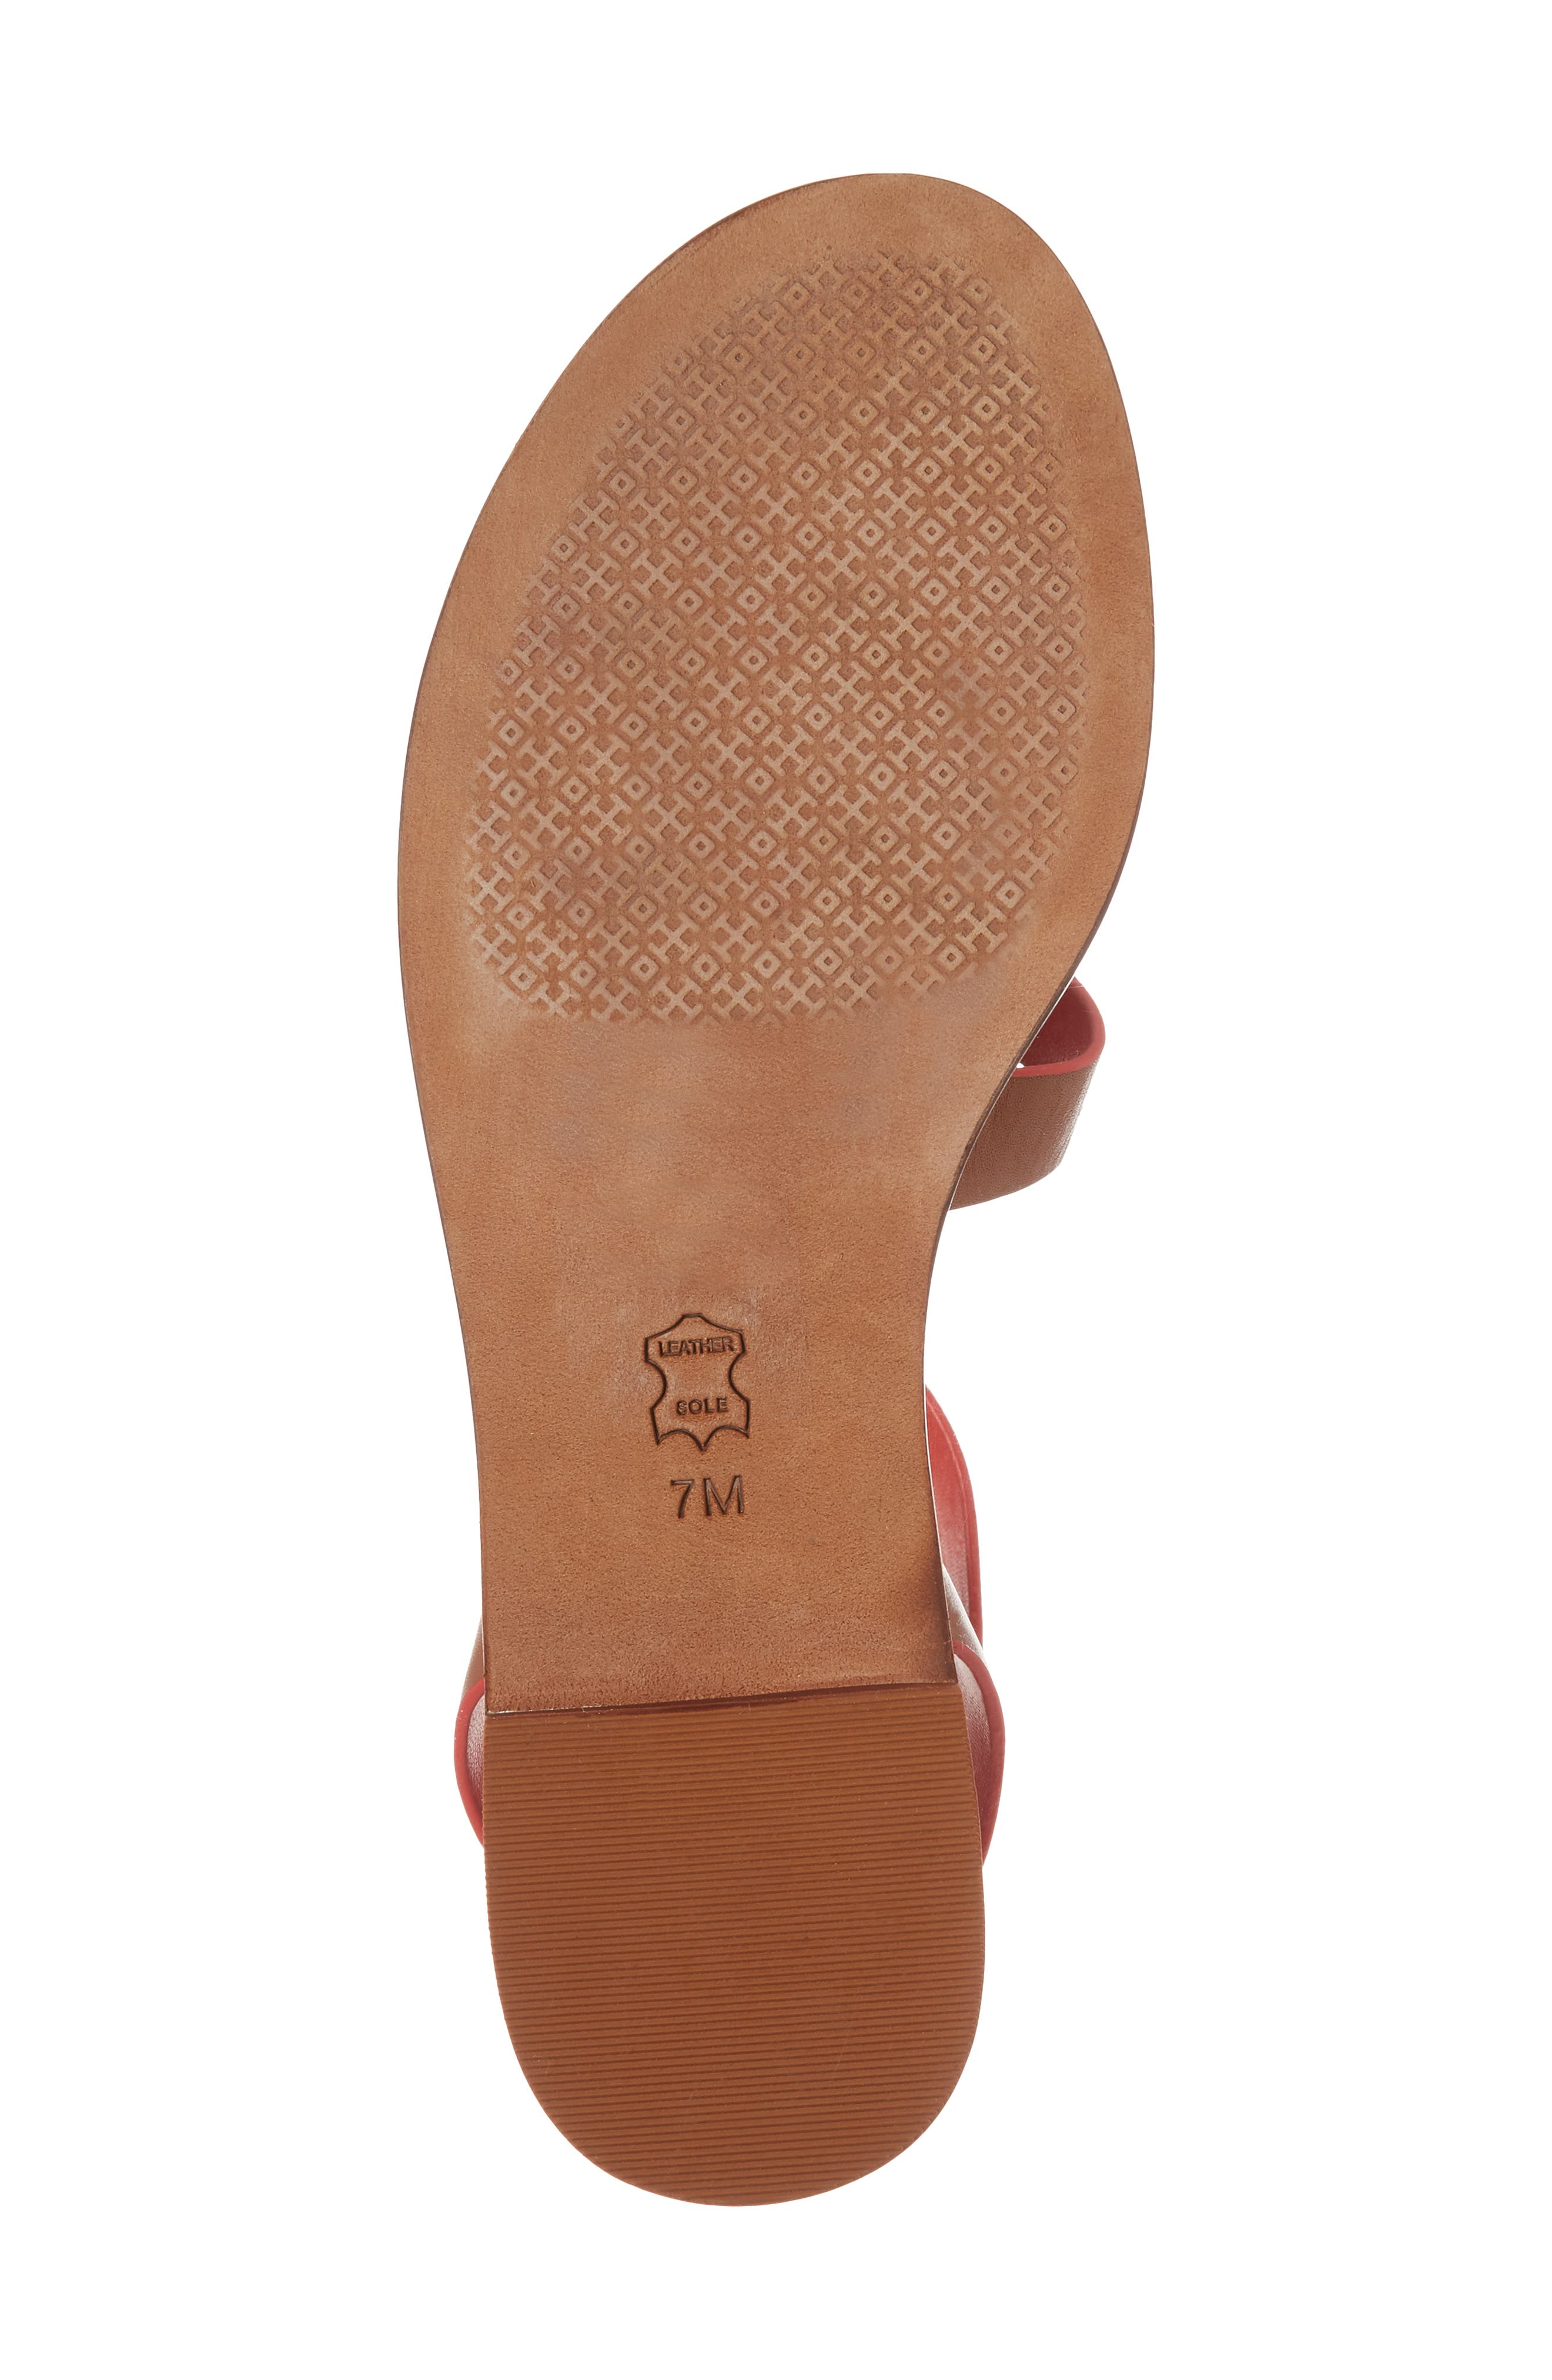 Patos Gladiator Sandal,                             Alternate thumbnail 6, color,                             Perfect Cuoio